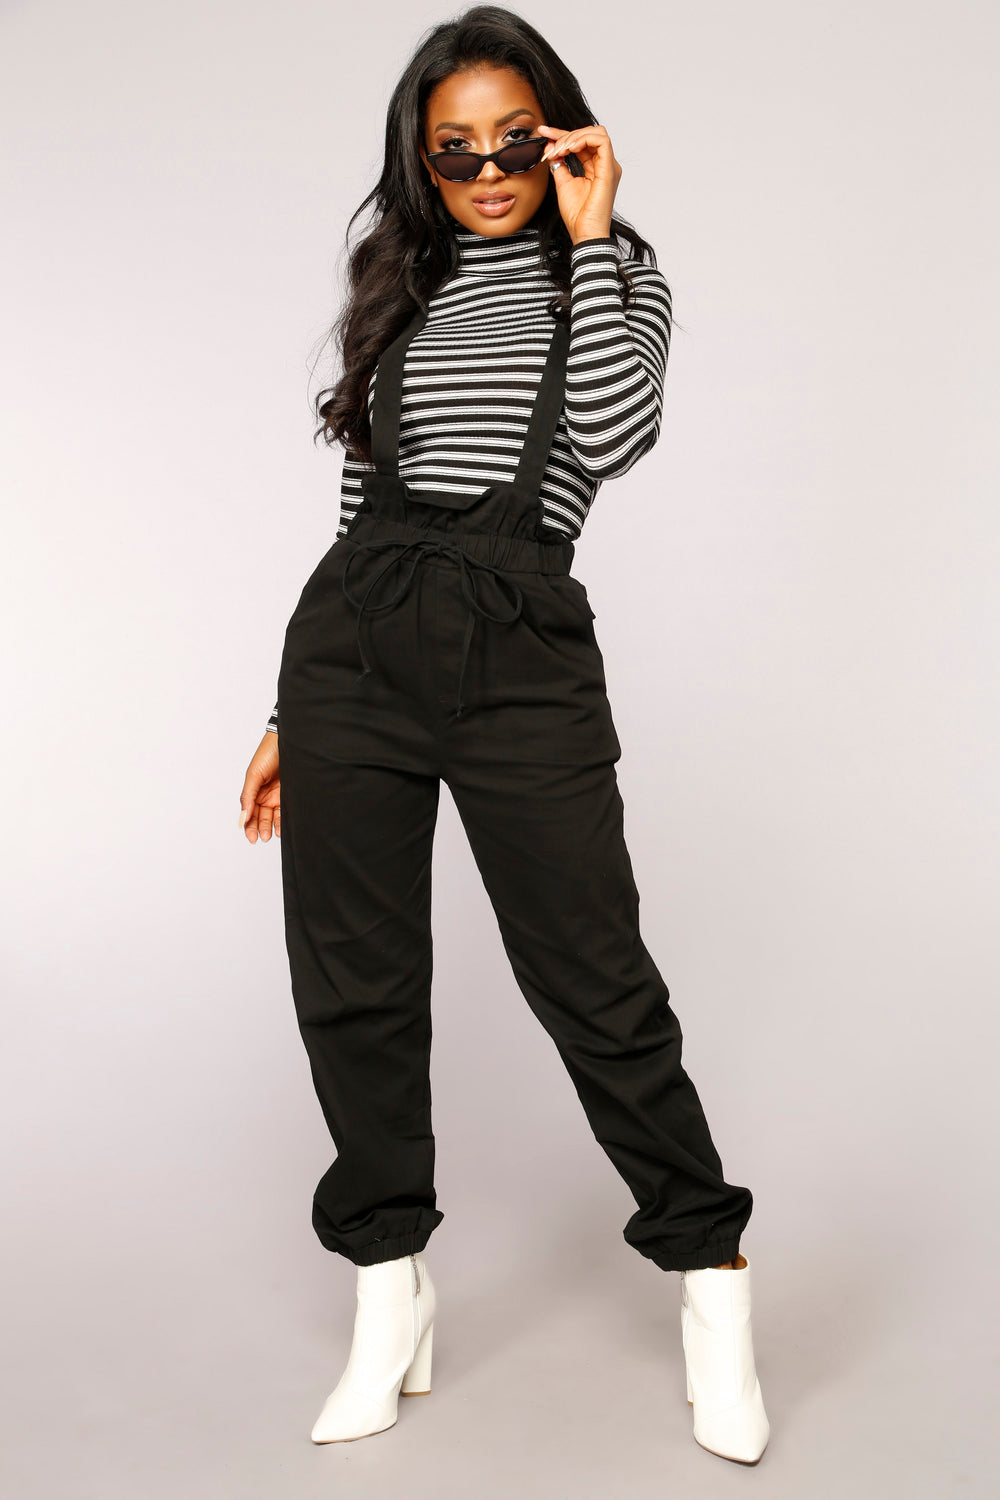 Orabelle Strap Pants - Black